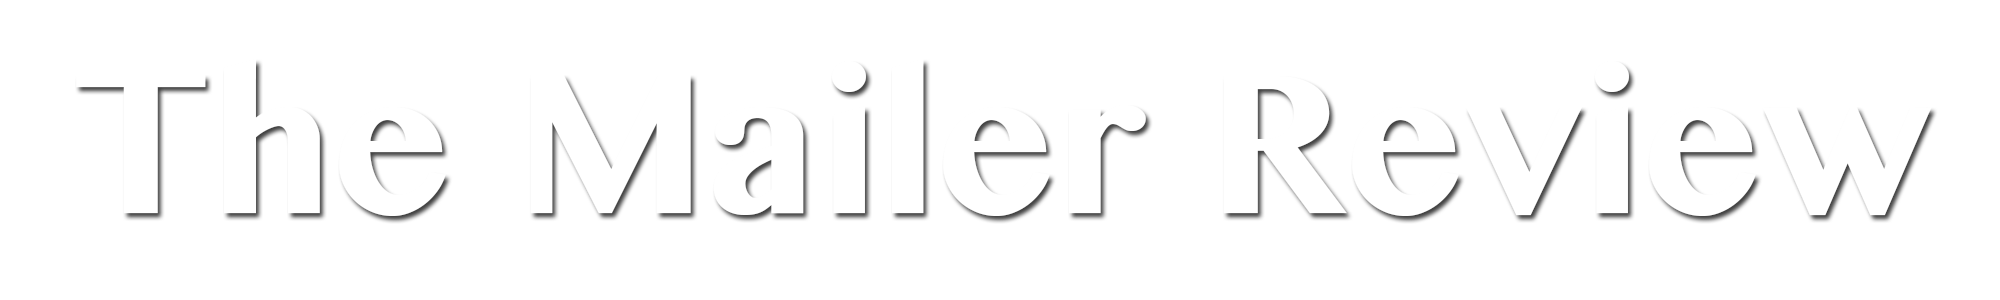 The Mailer Review